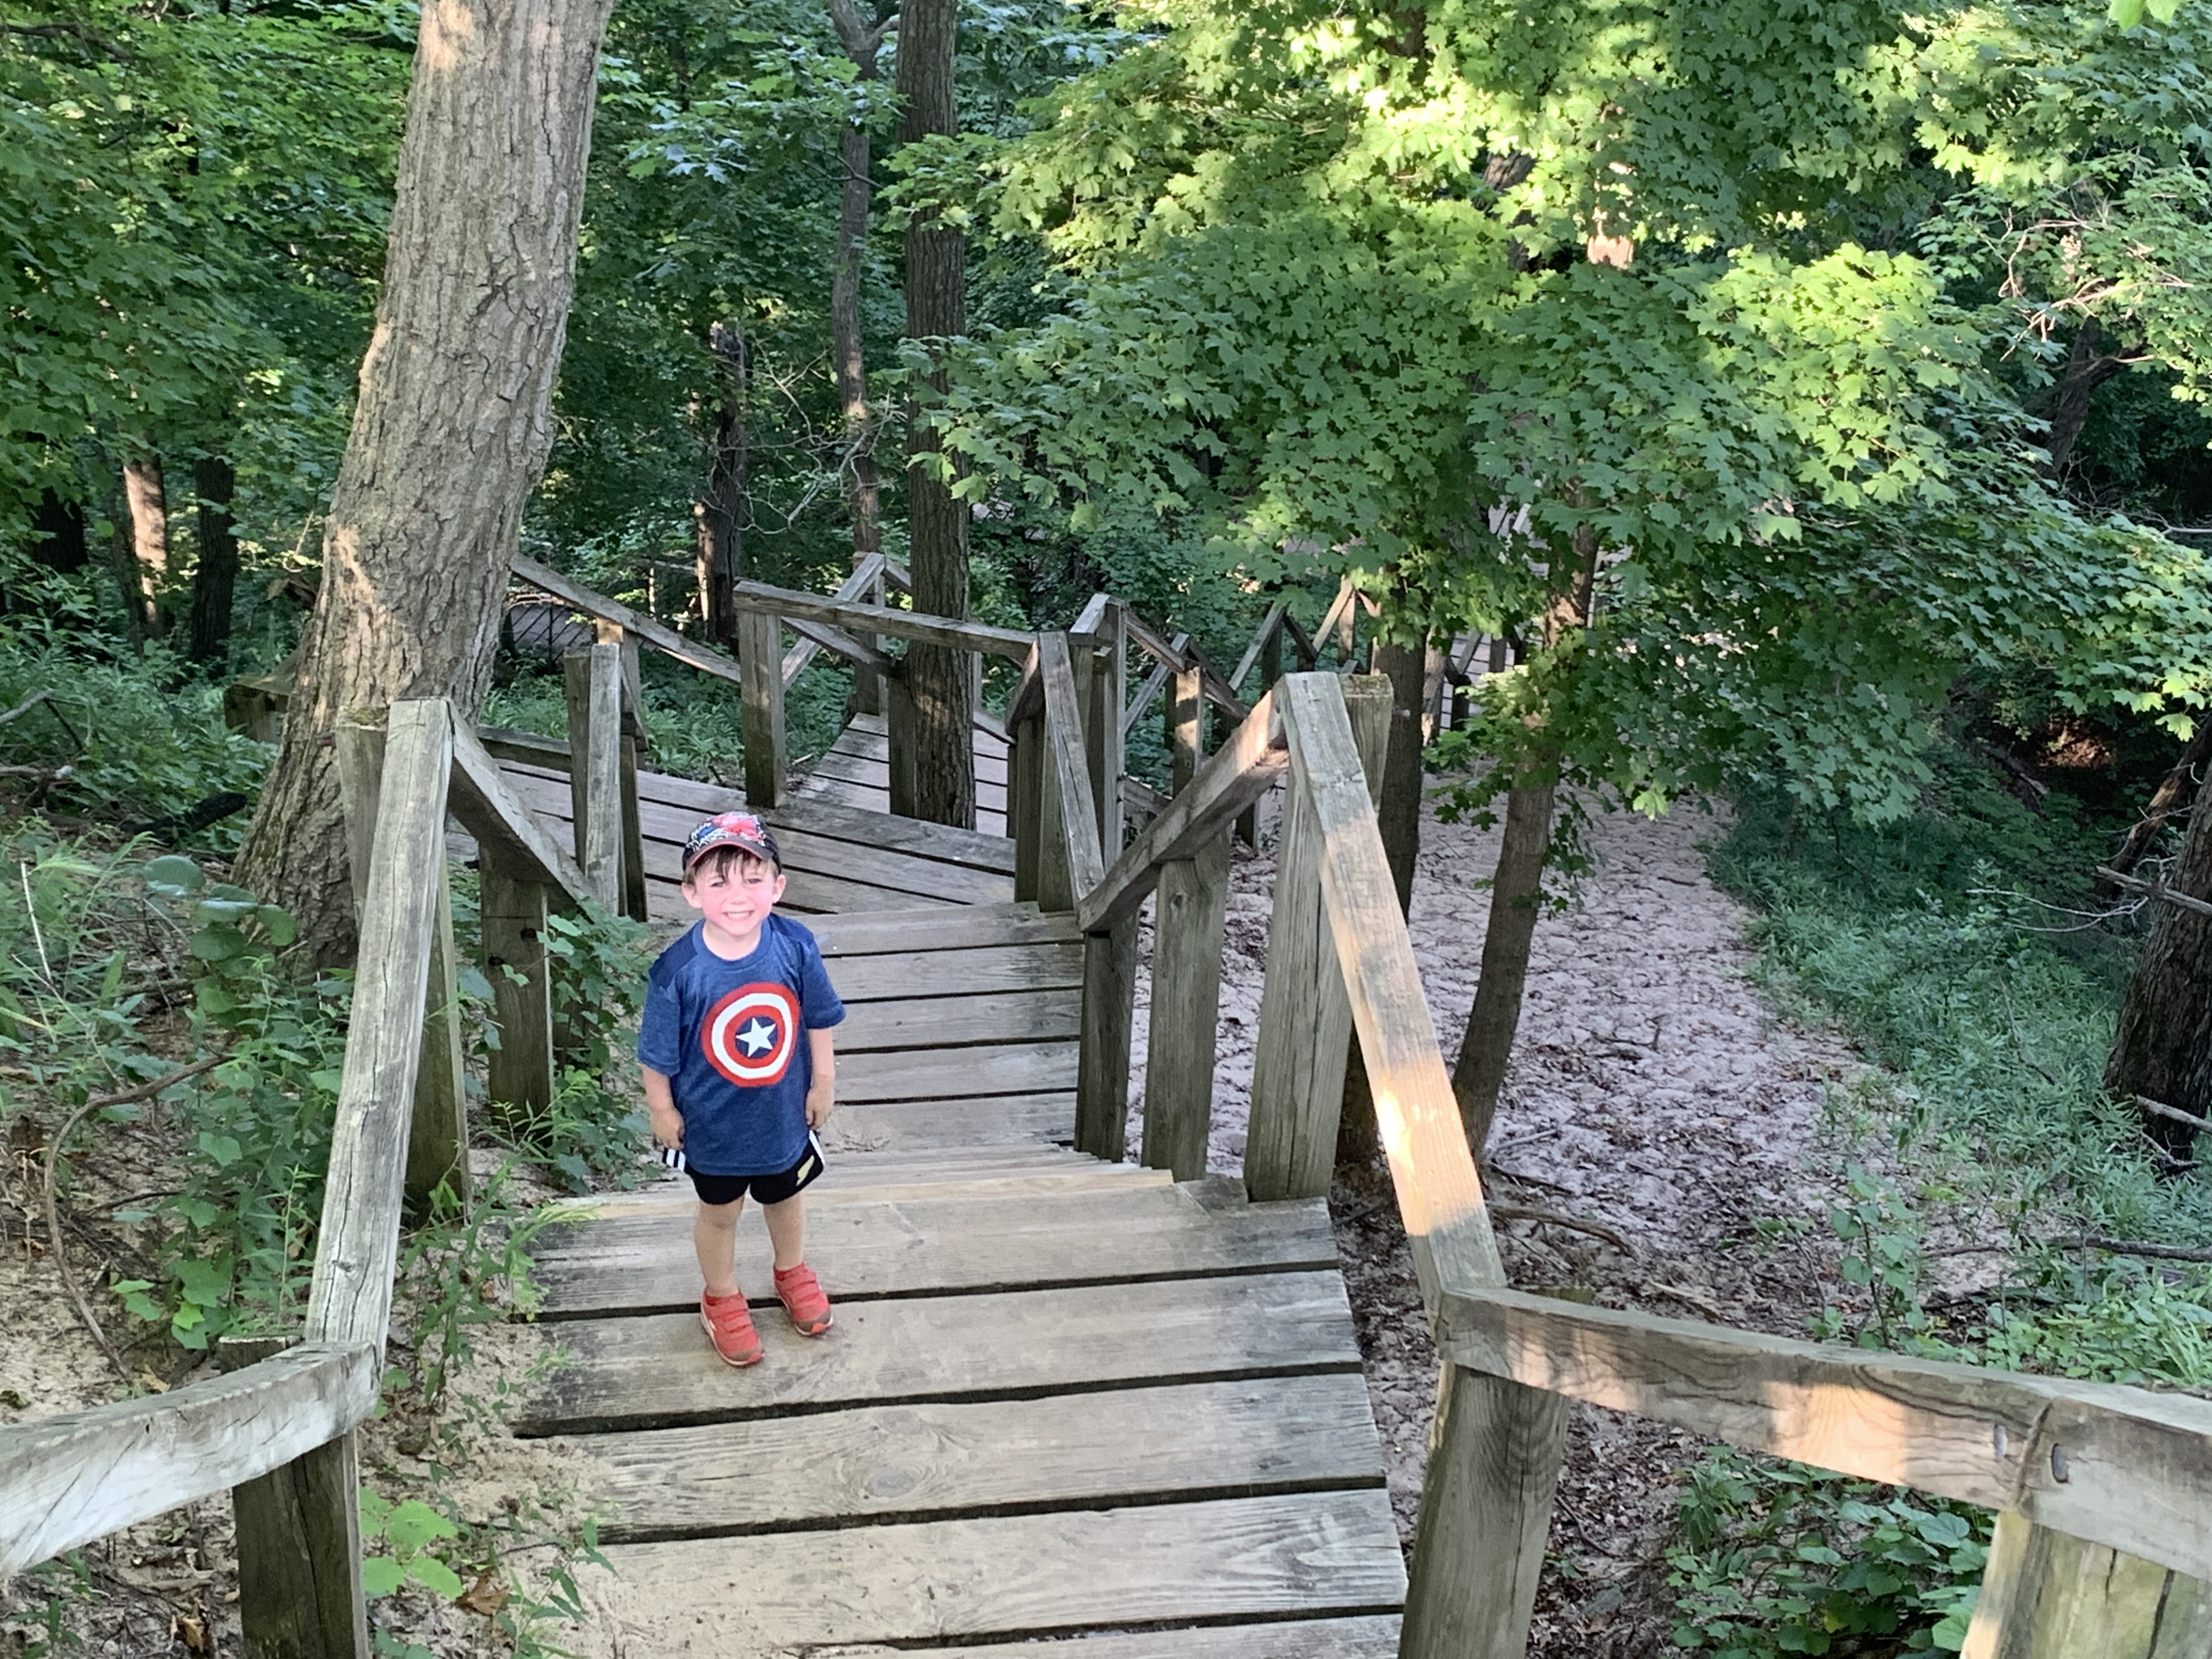 Stairs on hiking trail at Indiana Dunes State Park